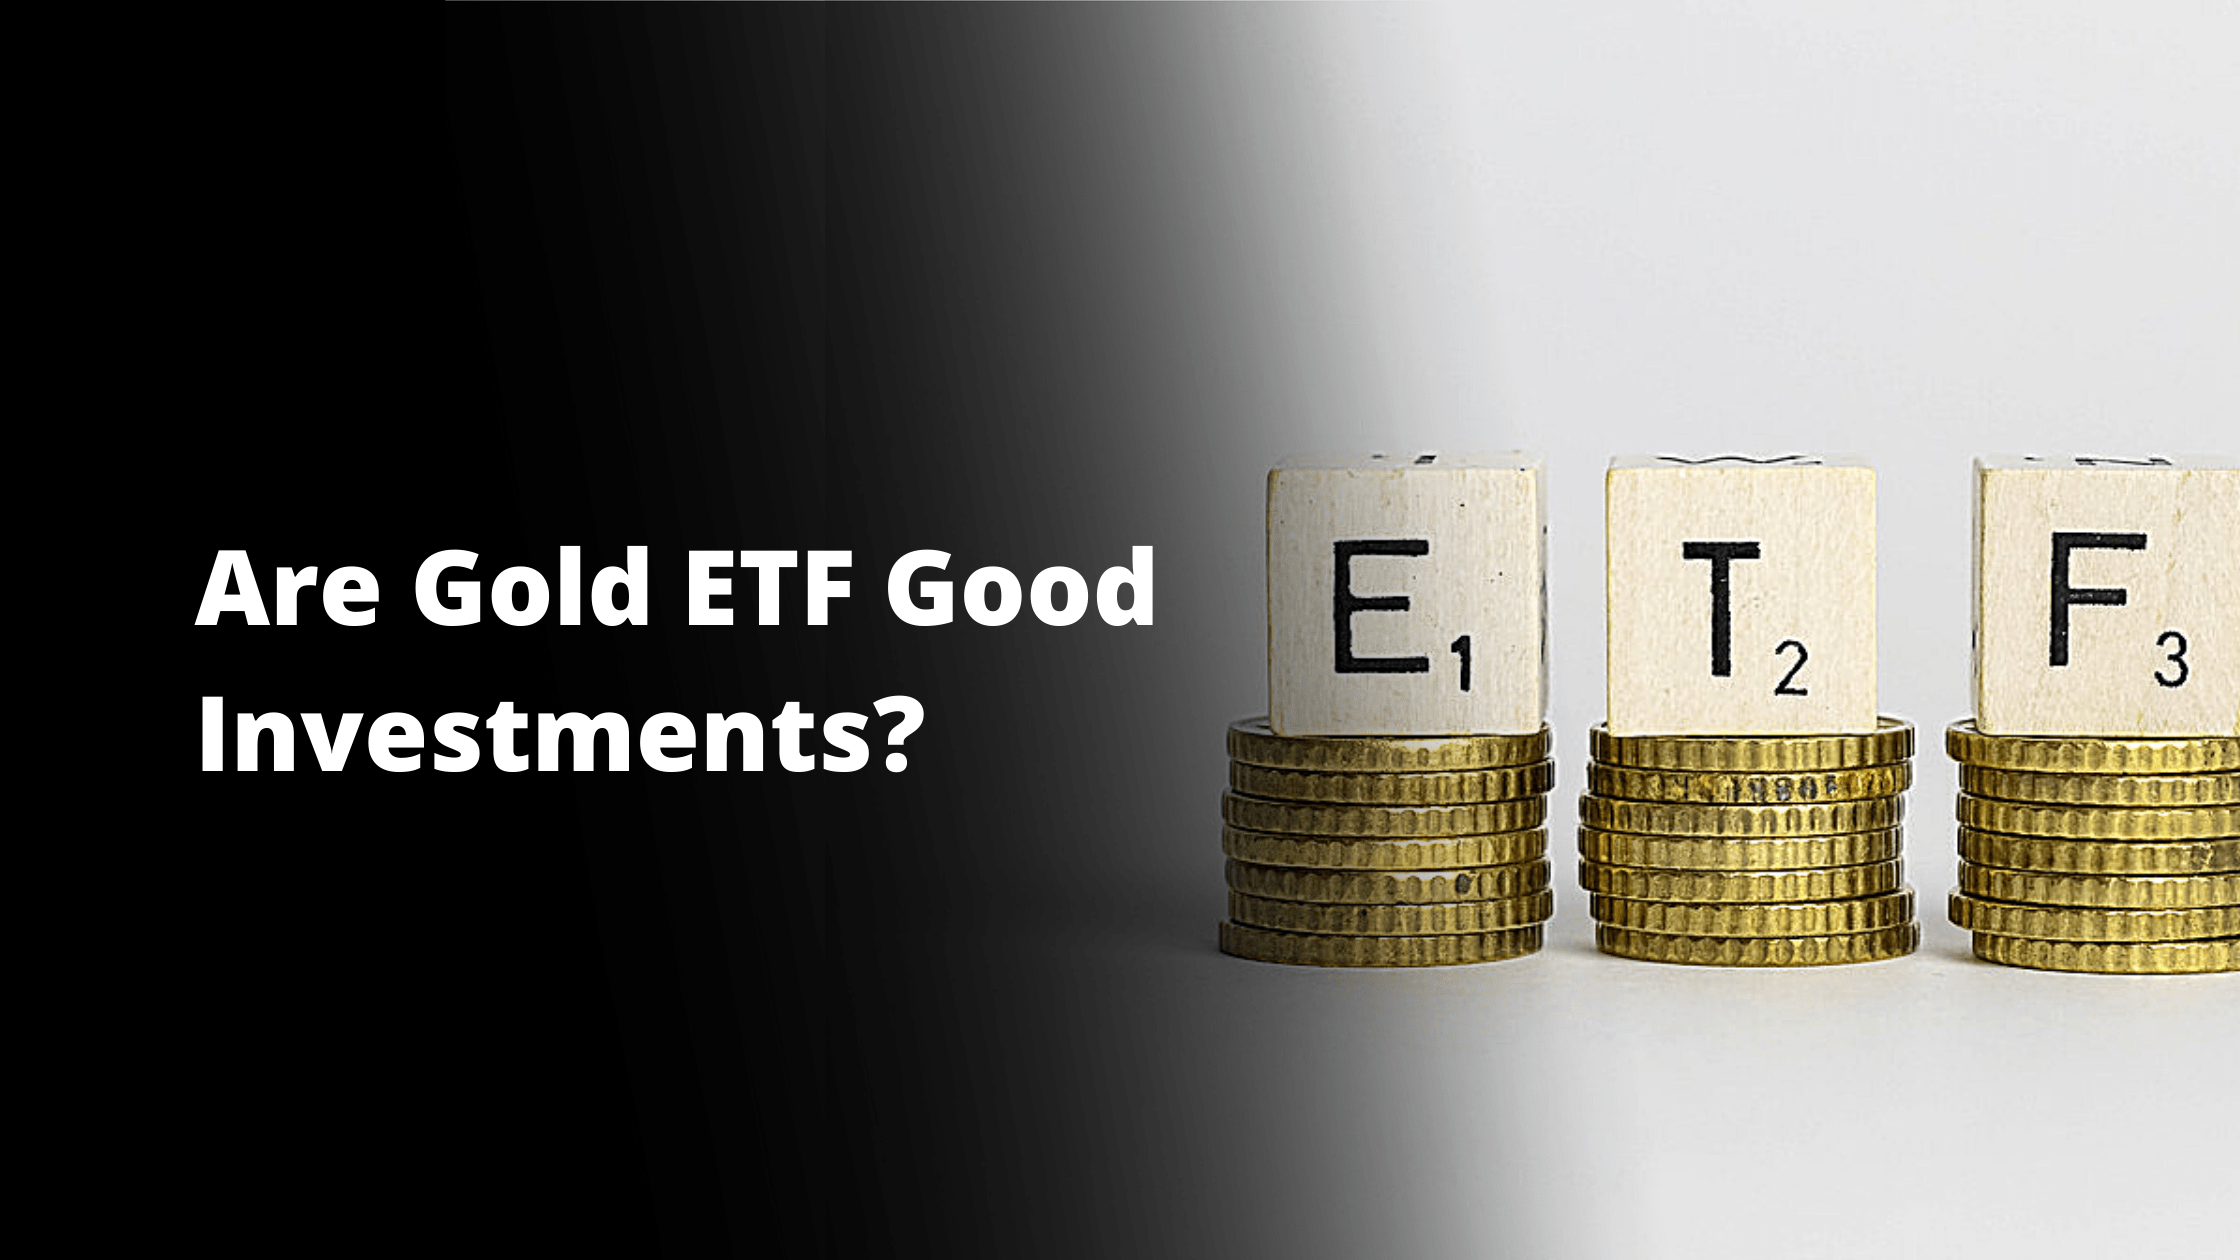 Are gold etf's a good investment?